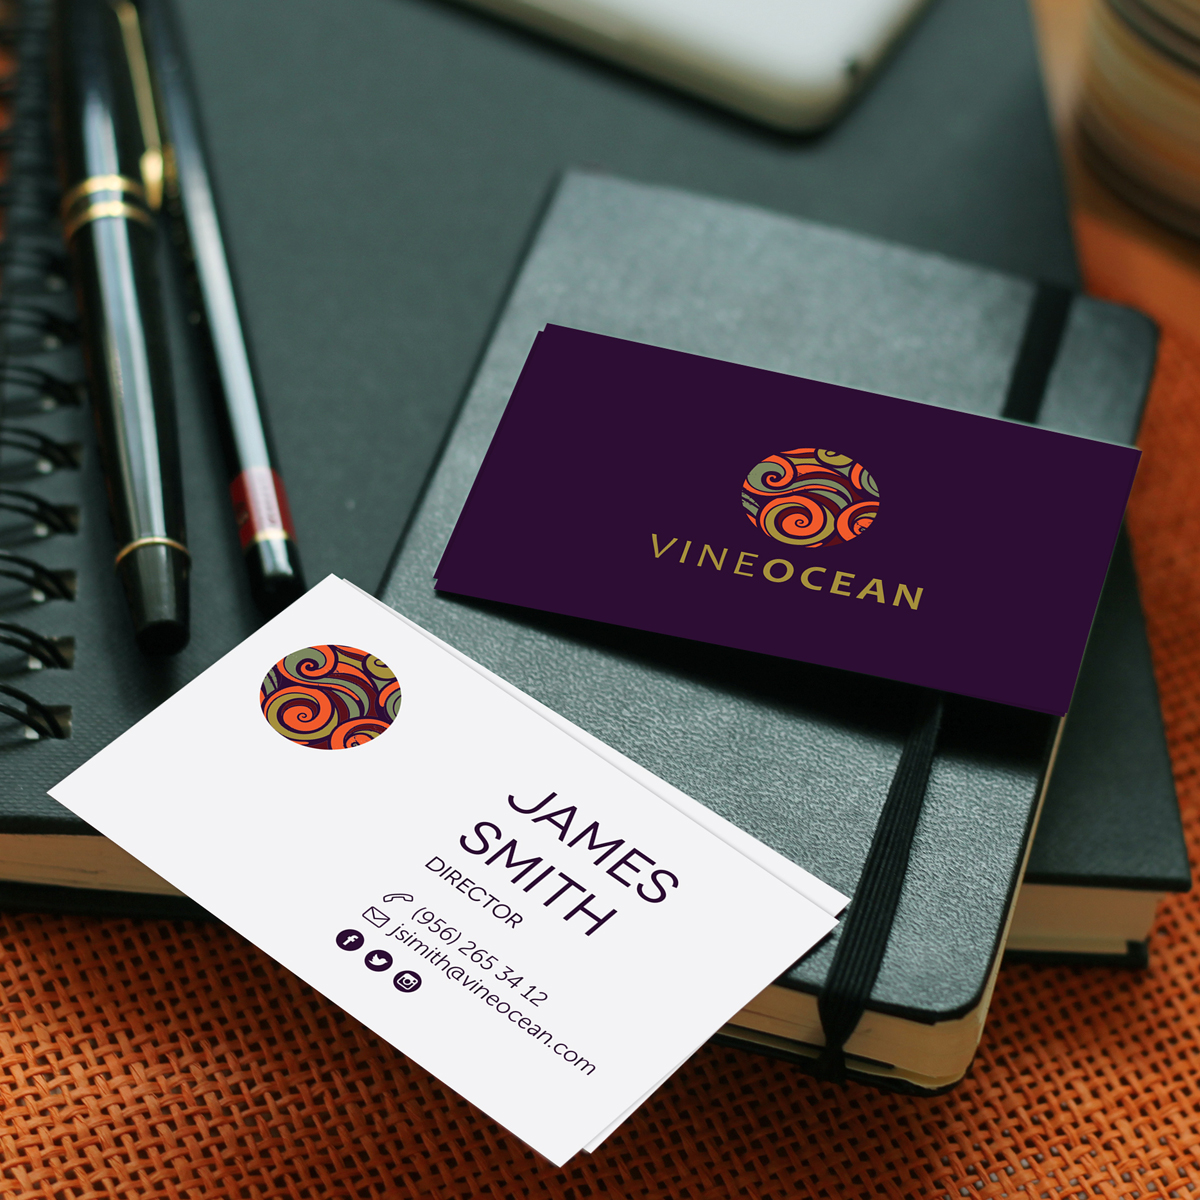 Vineocean's Printed Business Card